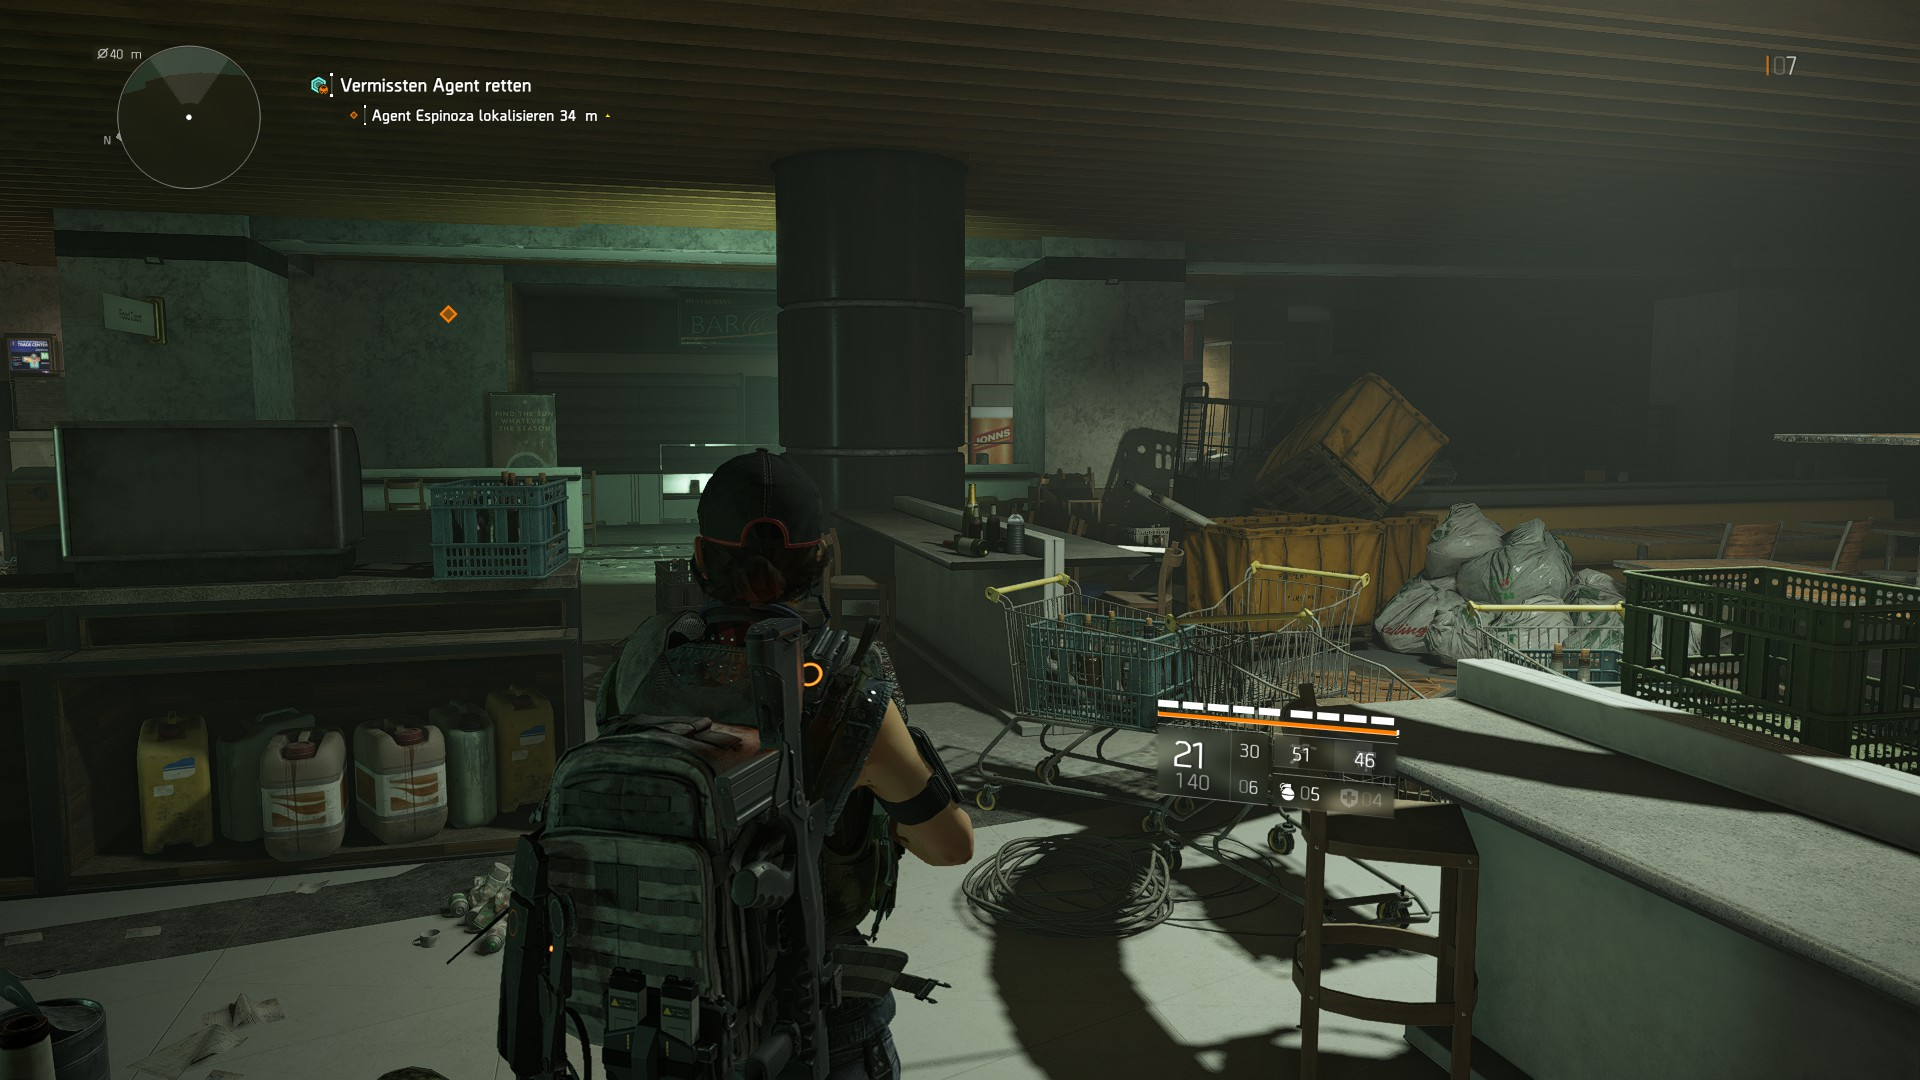 Tom Clancy's The Division® 22019-5-7-2-30-18.jpg